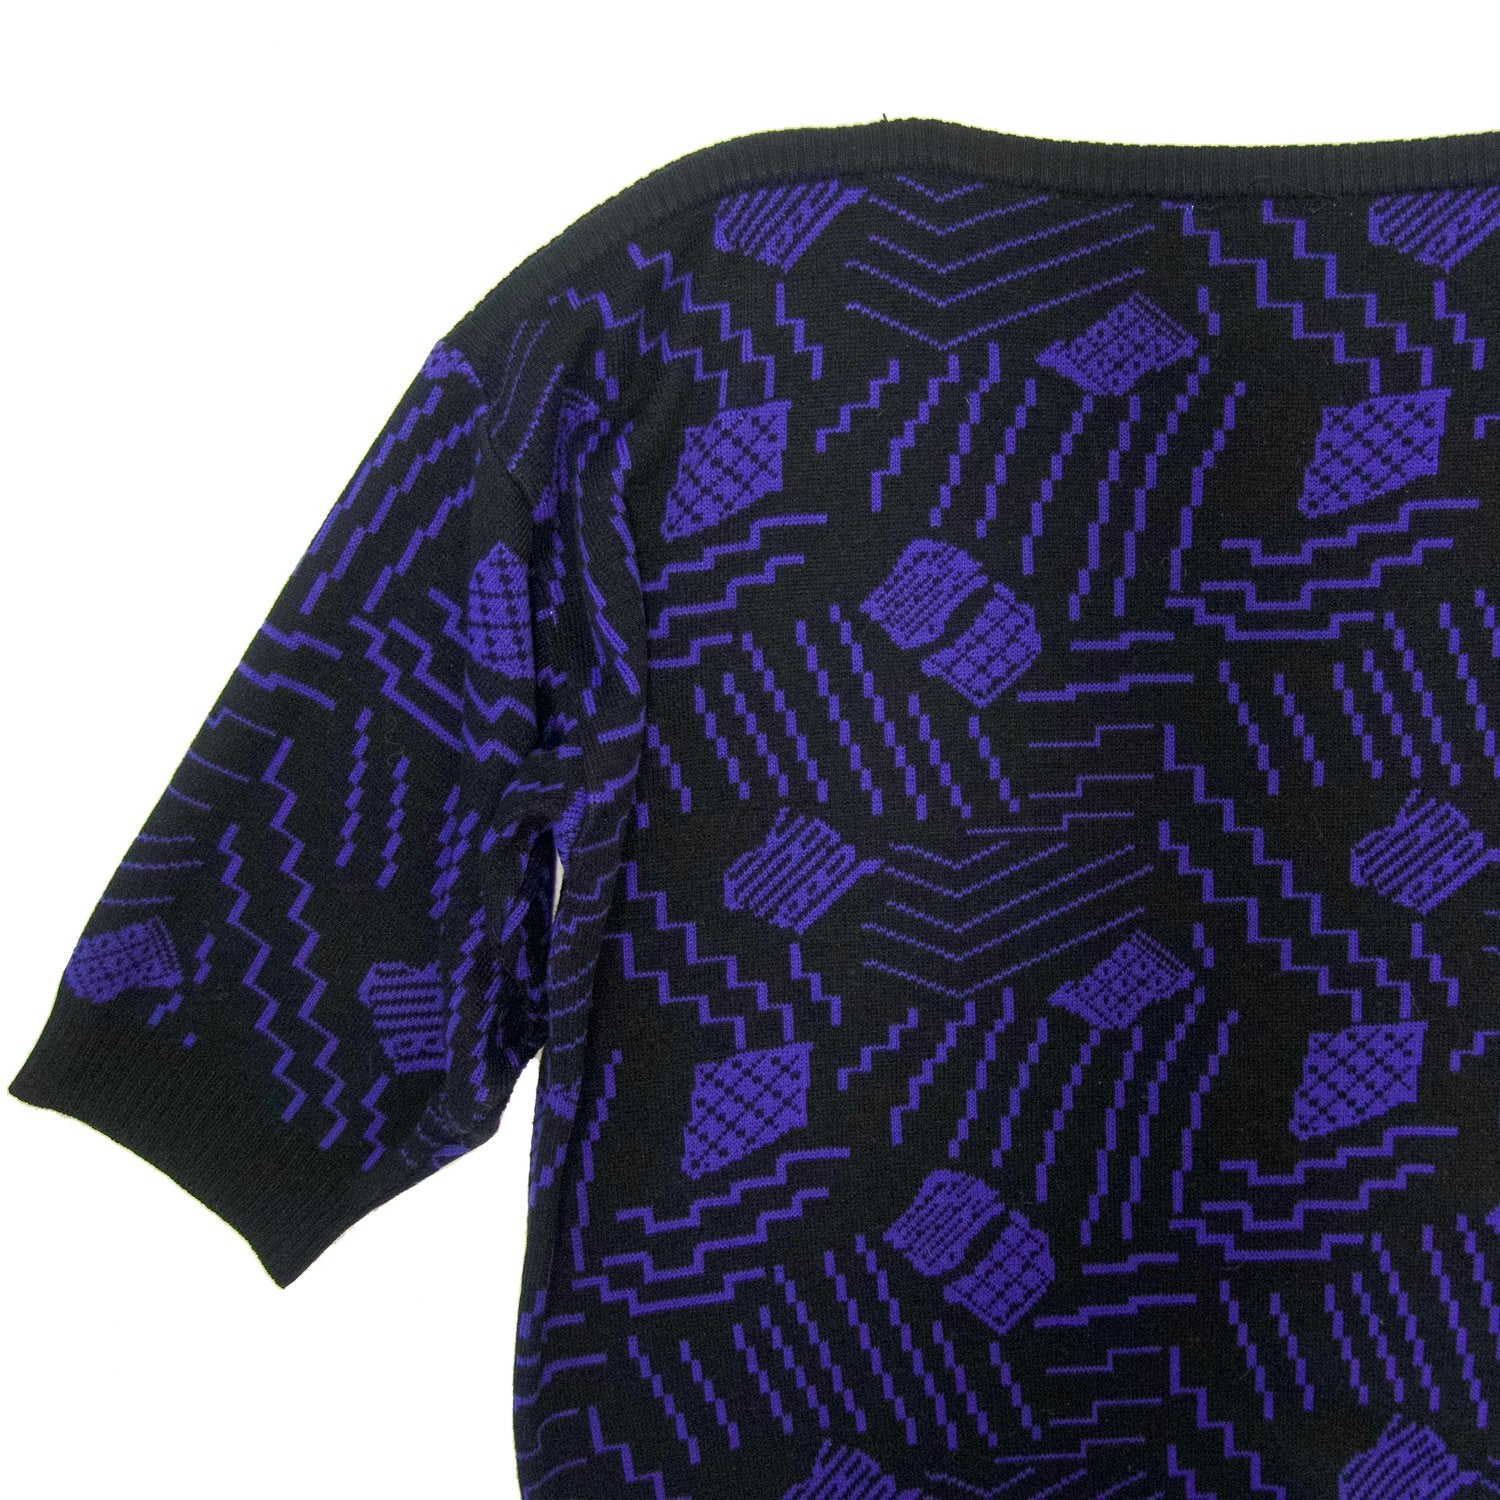 Second Room Vintage Clothing. Vintage boat neck sweater with black and purple geometric design, with 3/4 sleeve and ribbing at cuffs and waist. Free North American shipping on all orders.